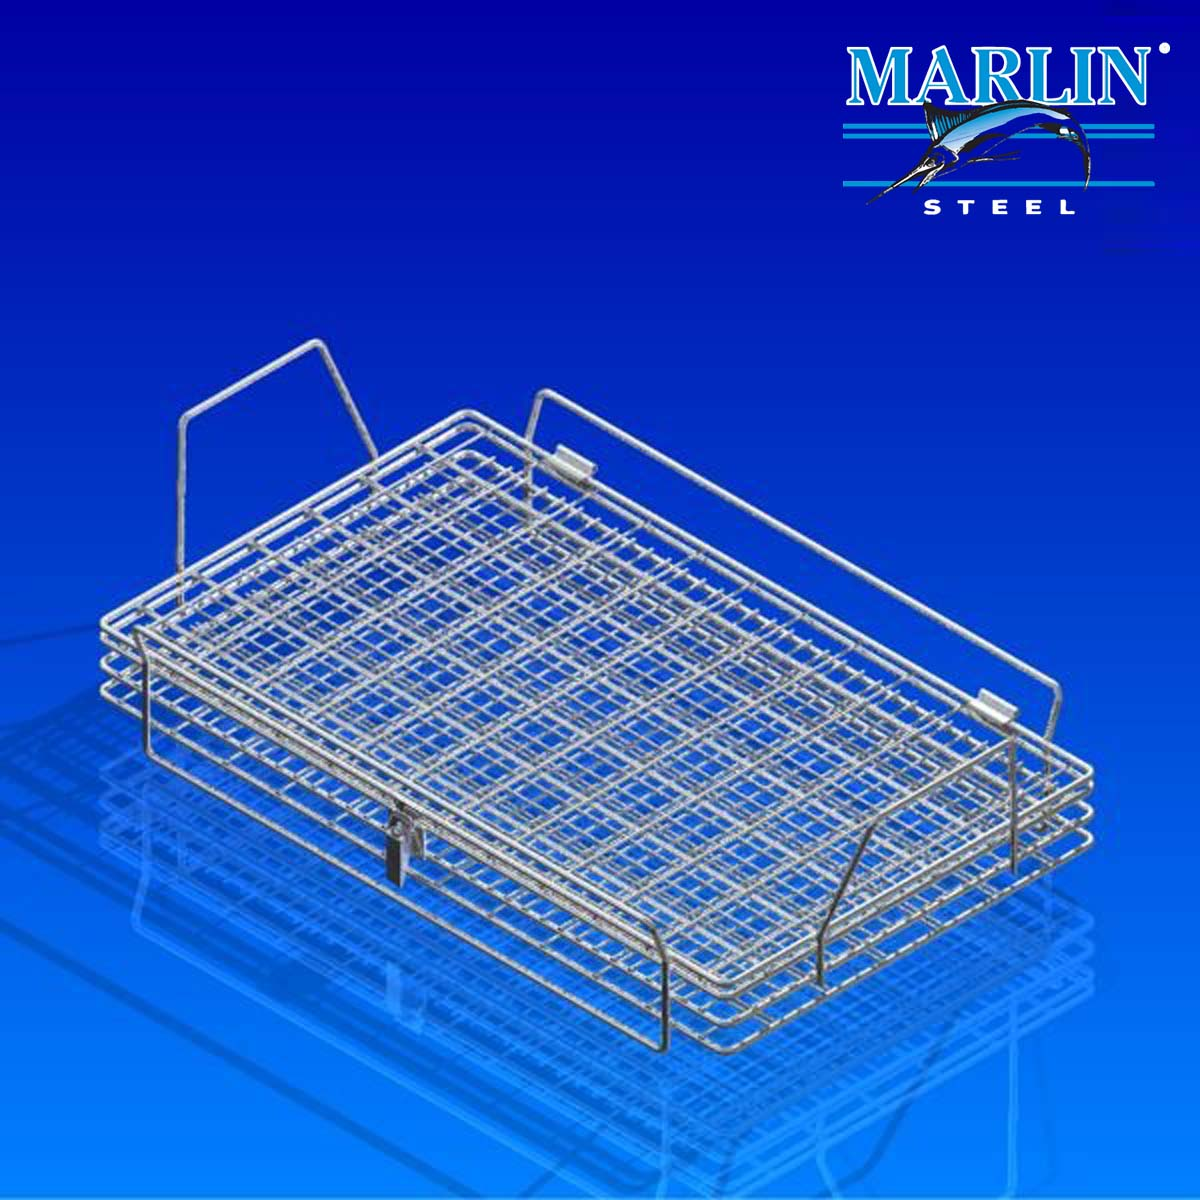 Marlin Steel Wire Baskets with Lids 1119001